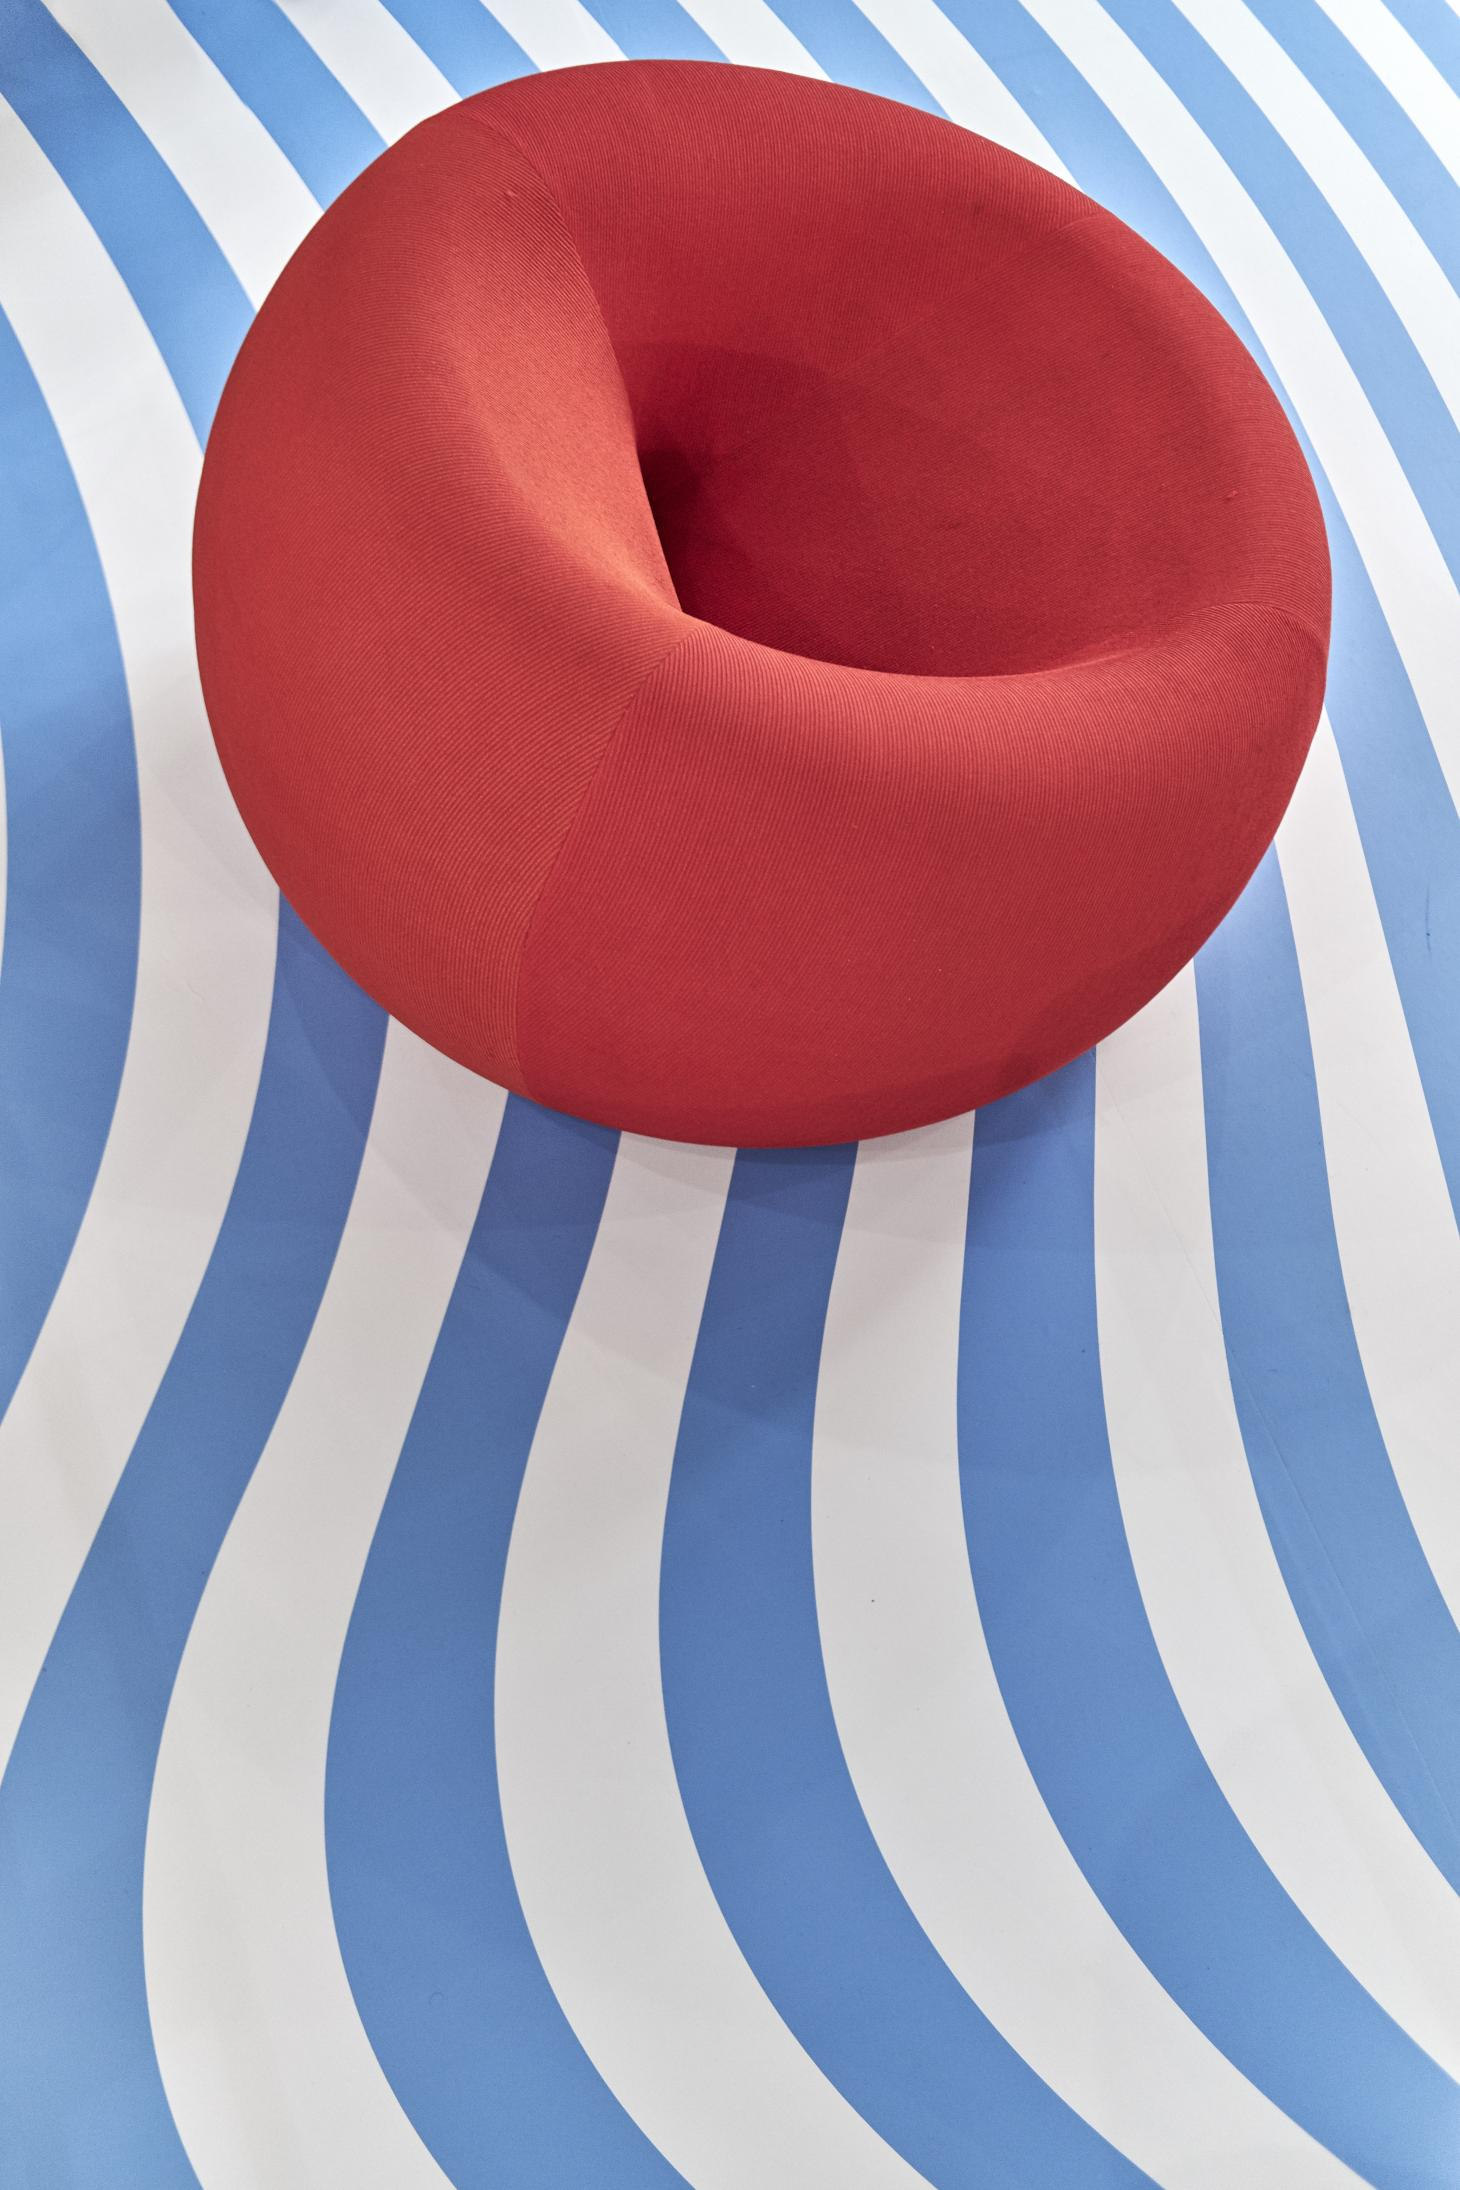 Centre Pompidou's candy-striped design show makes waves in the south of France